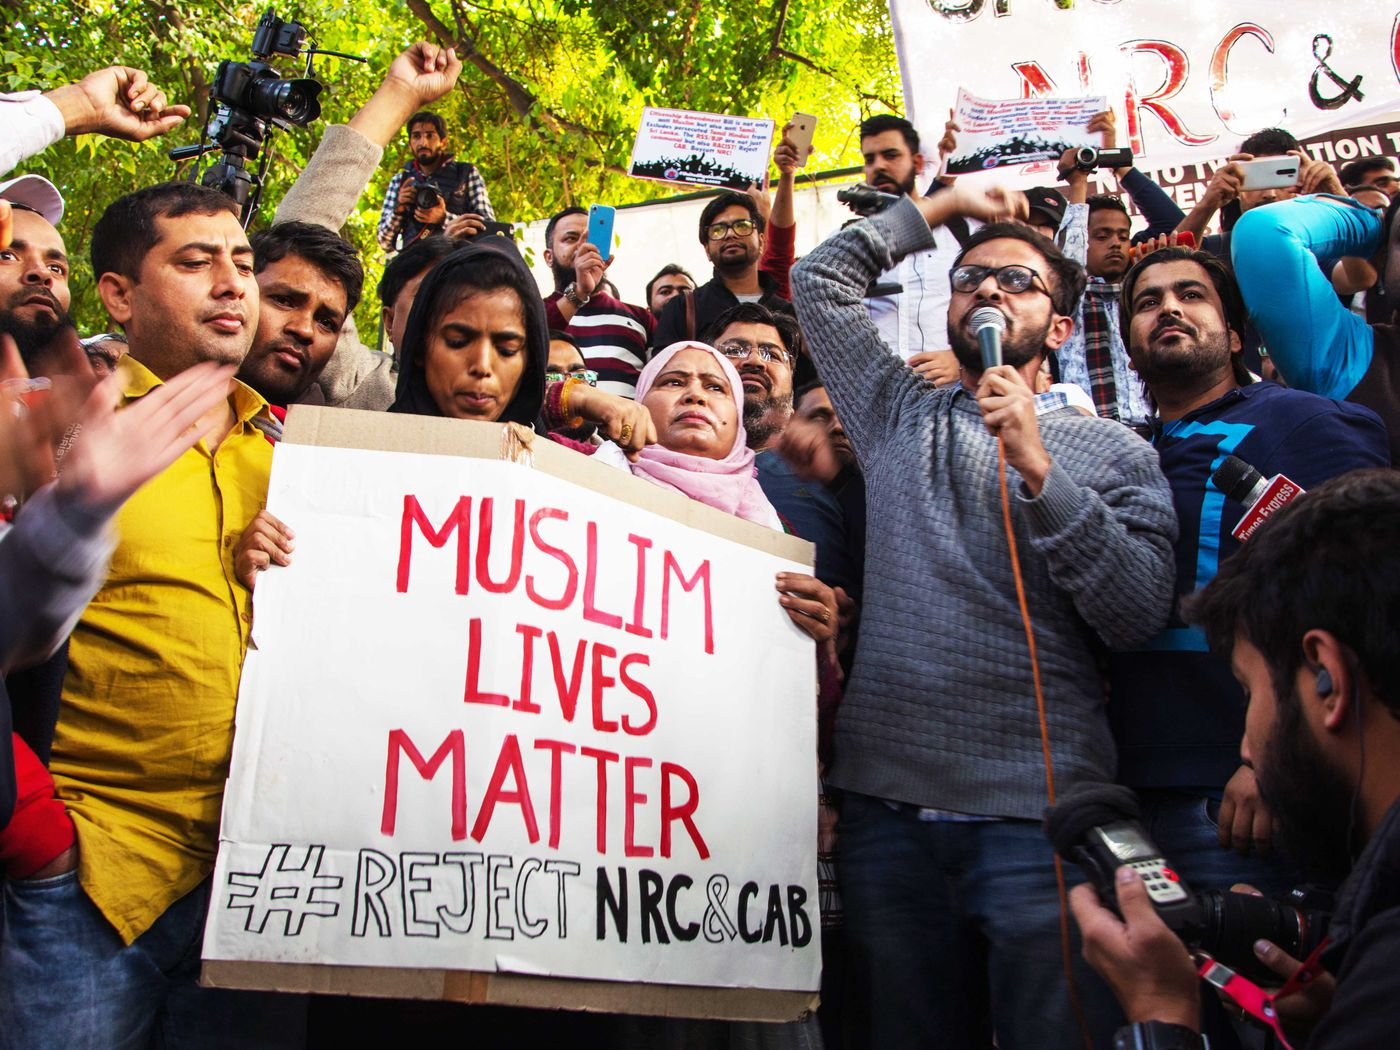 India's students protest citizenship law that excludes Muslims - Vox